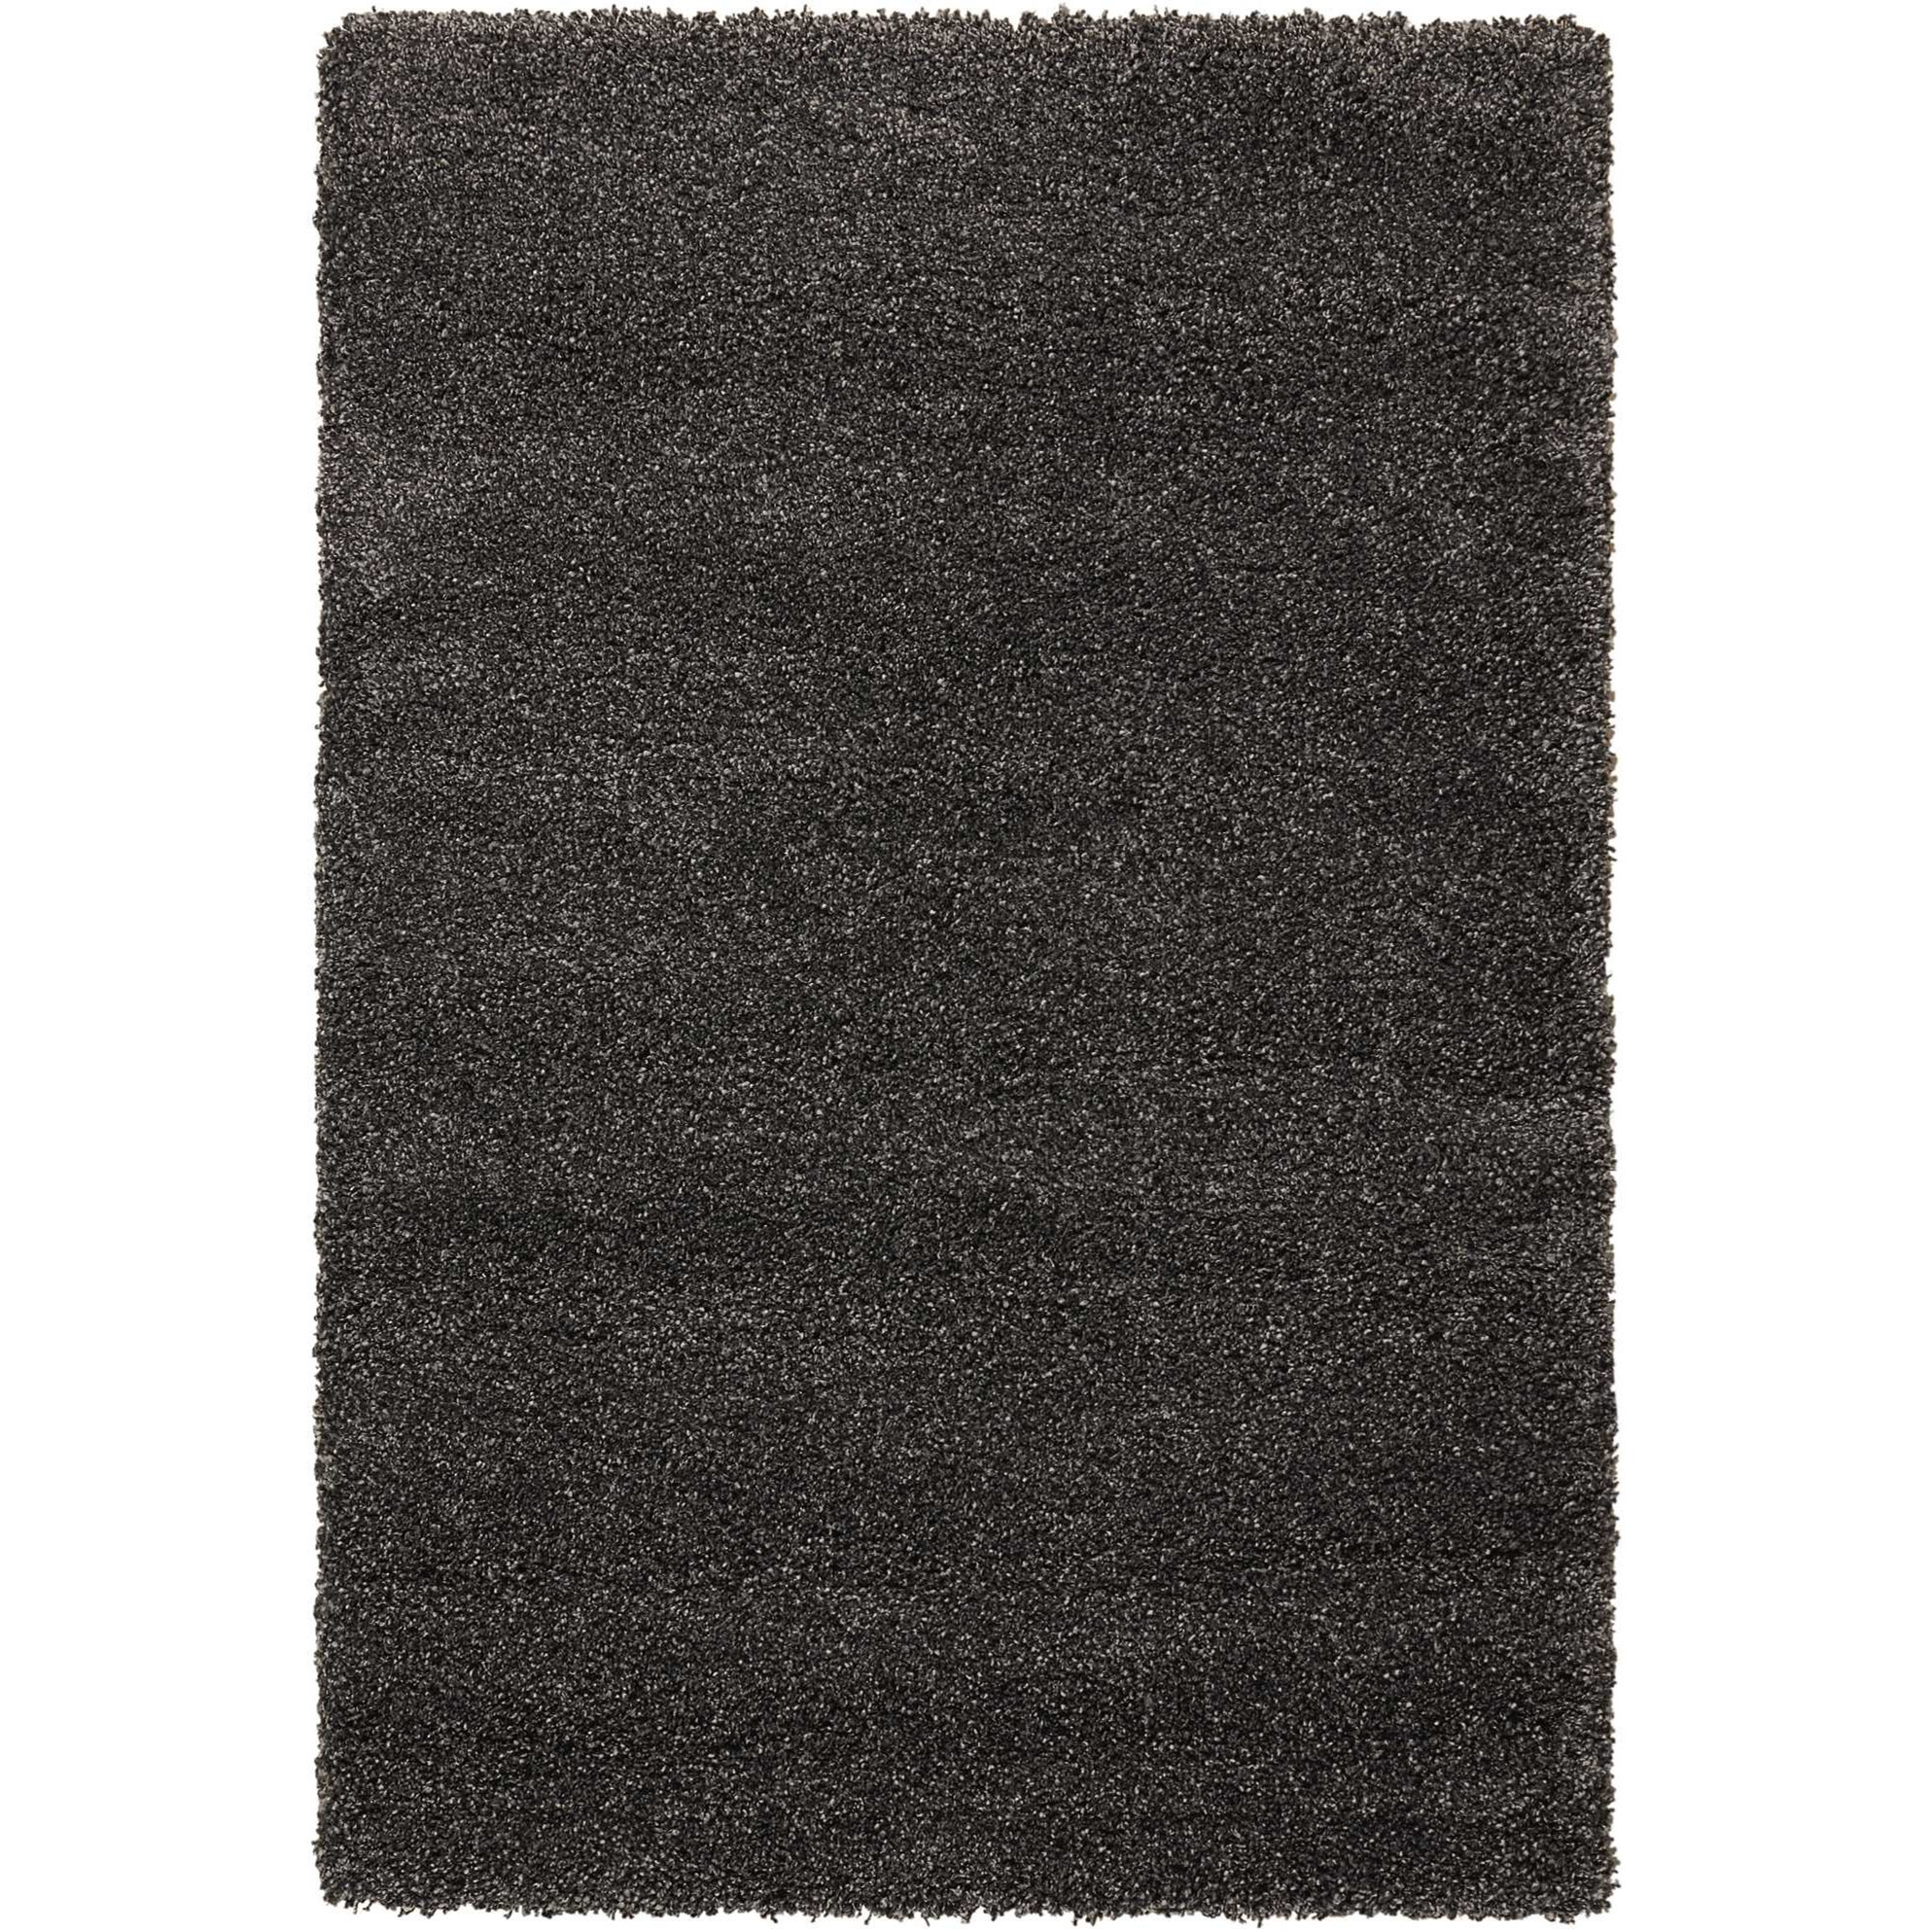 Amore Amore AMOR1 Grey 4'x6' Area Rug by Nourison at Home Collections Furniture